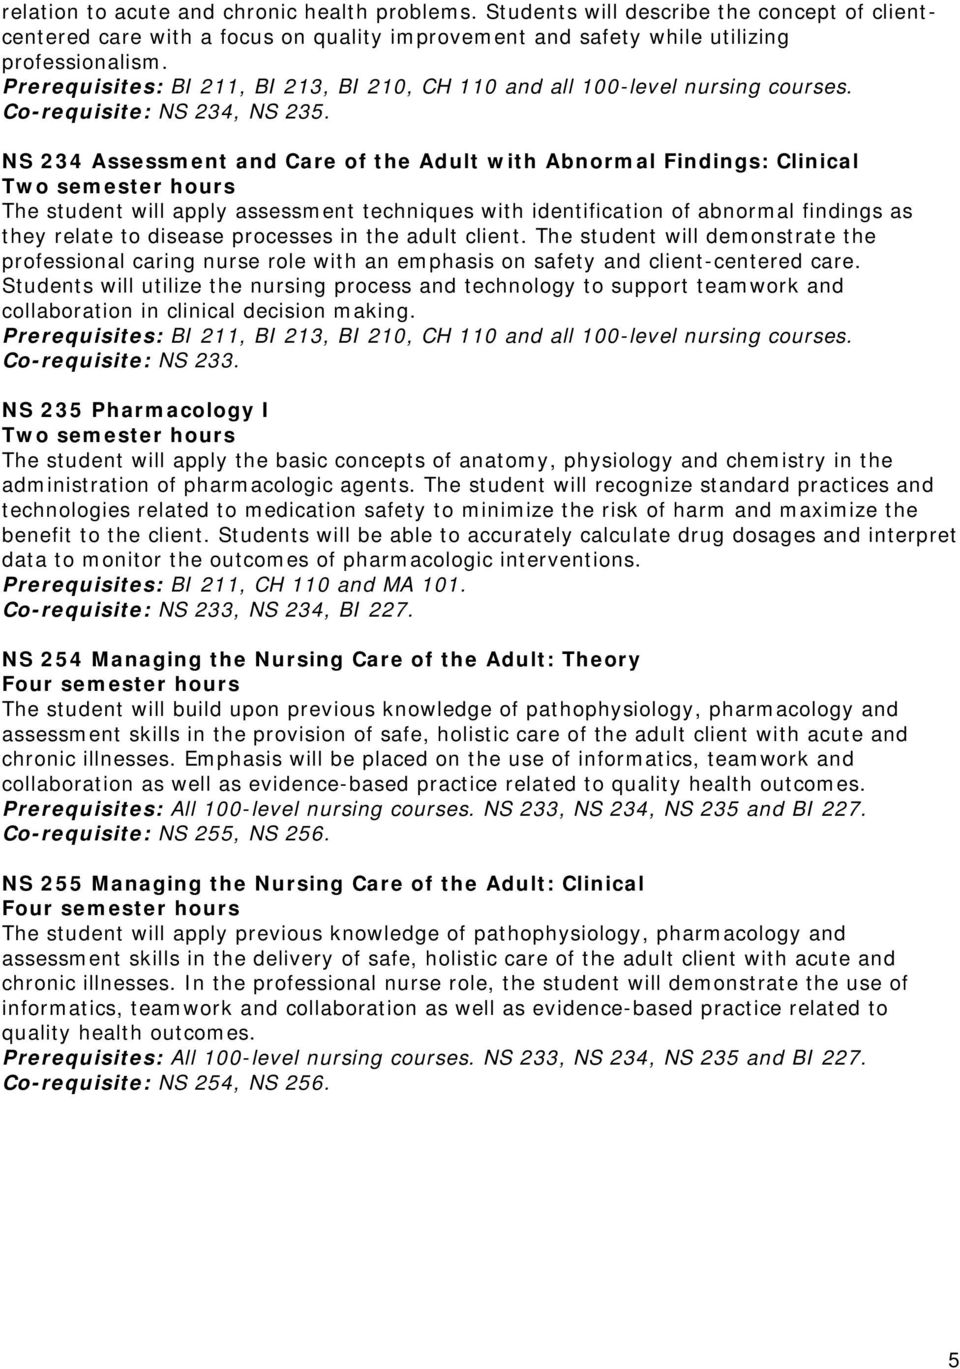 NS 234 Assessment and Care of the Adult with Abnormal Findings: Clinical The student will apply assessment techniques with identification of abnormal findings as they relate to disease processes in